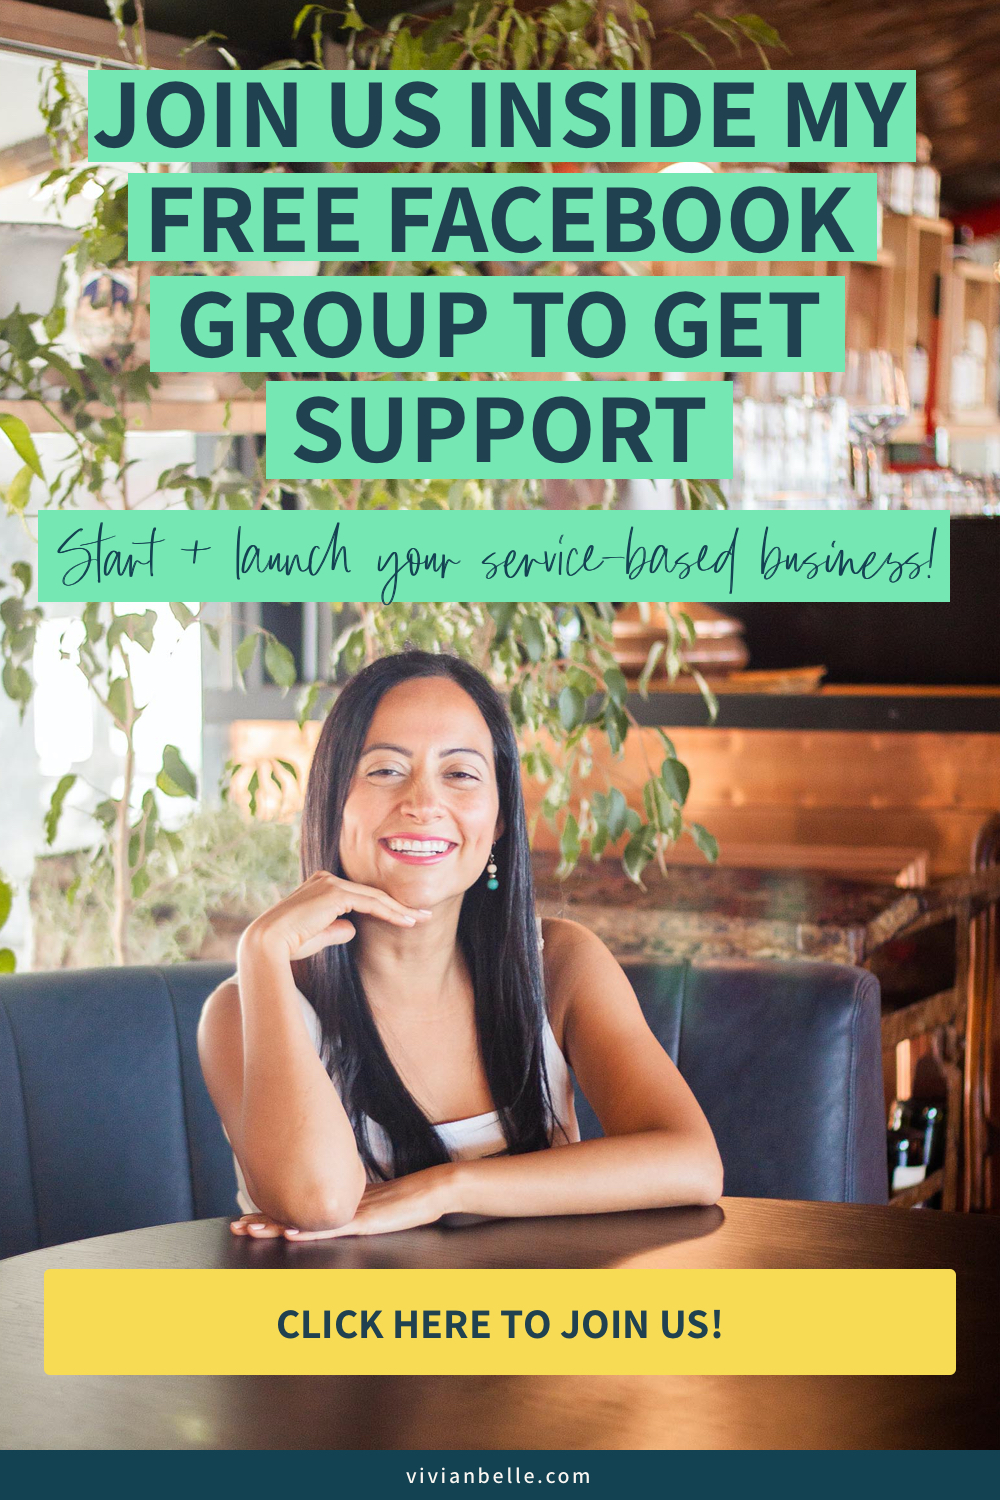 Facebook groups for business: How to get community support as you're building your service-based business